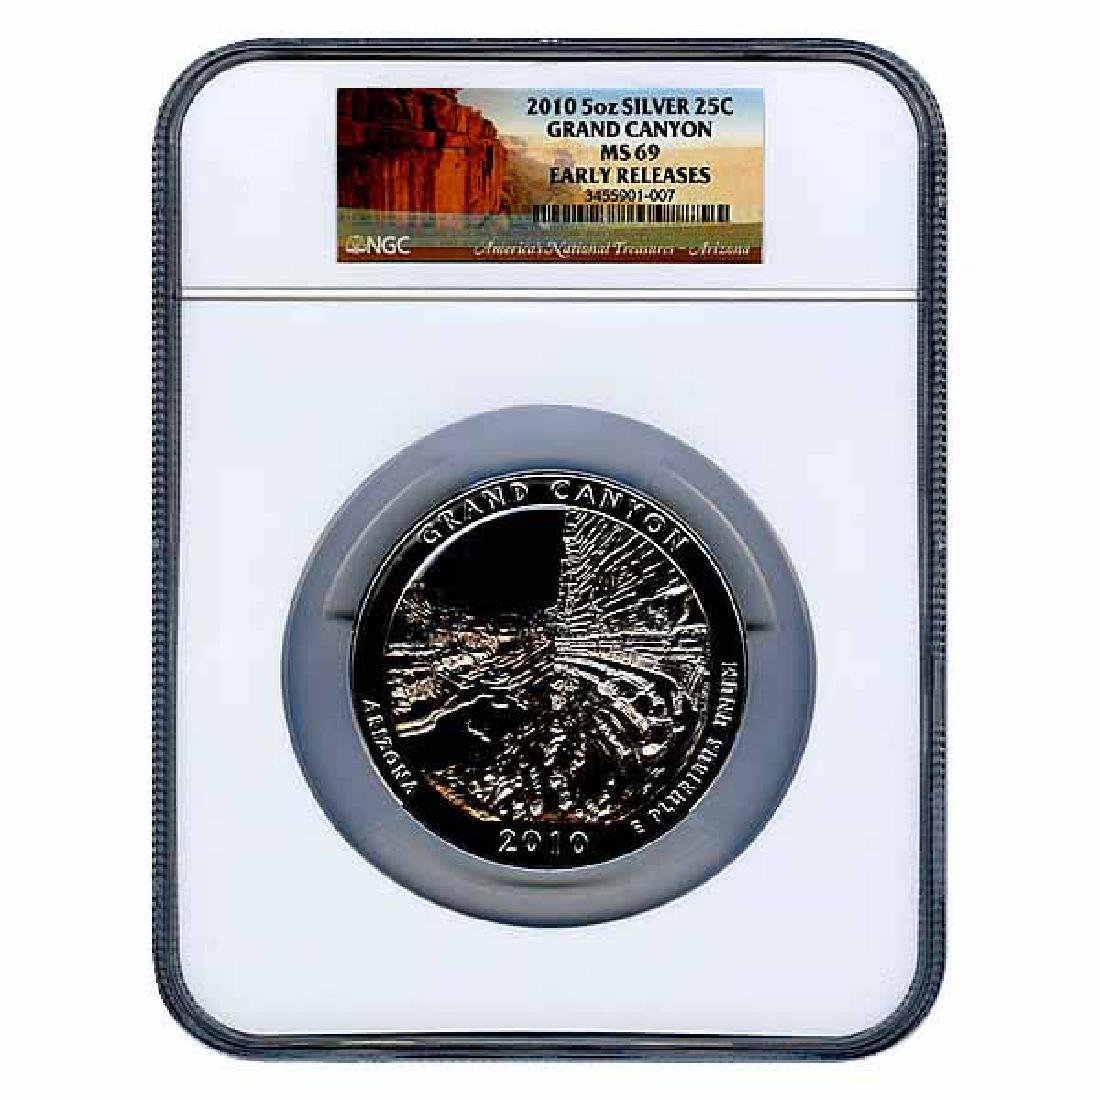 Certified ATB 5 Ounce Bullion NGC Grand Canyon MS69 Ear